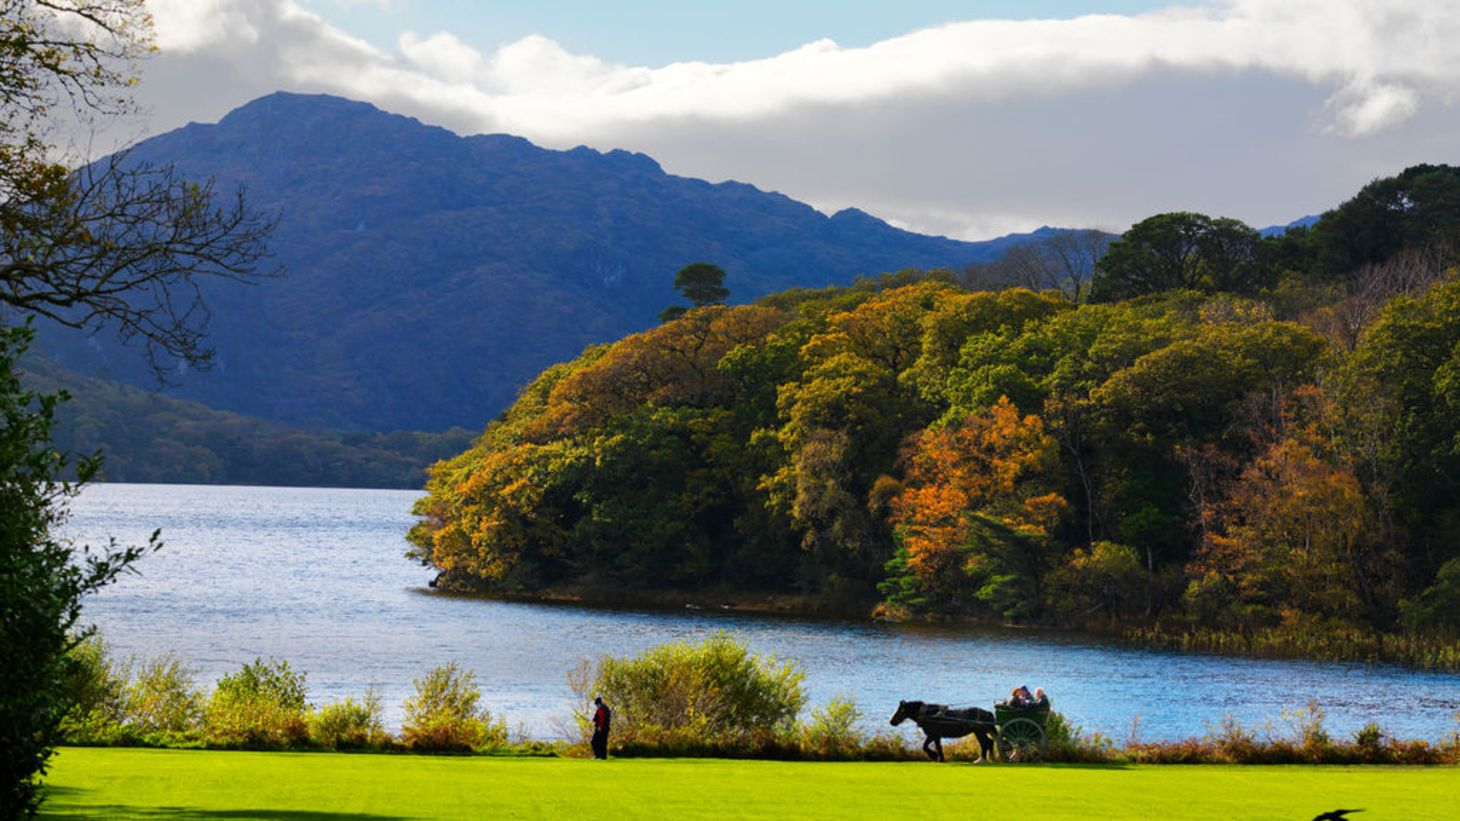 Stunning views around every corner in Killarney National Park.